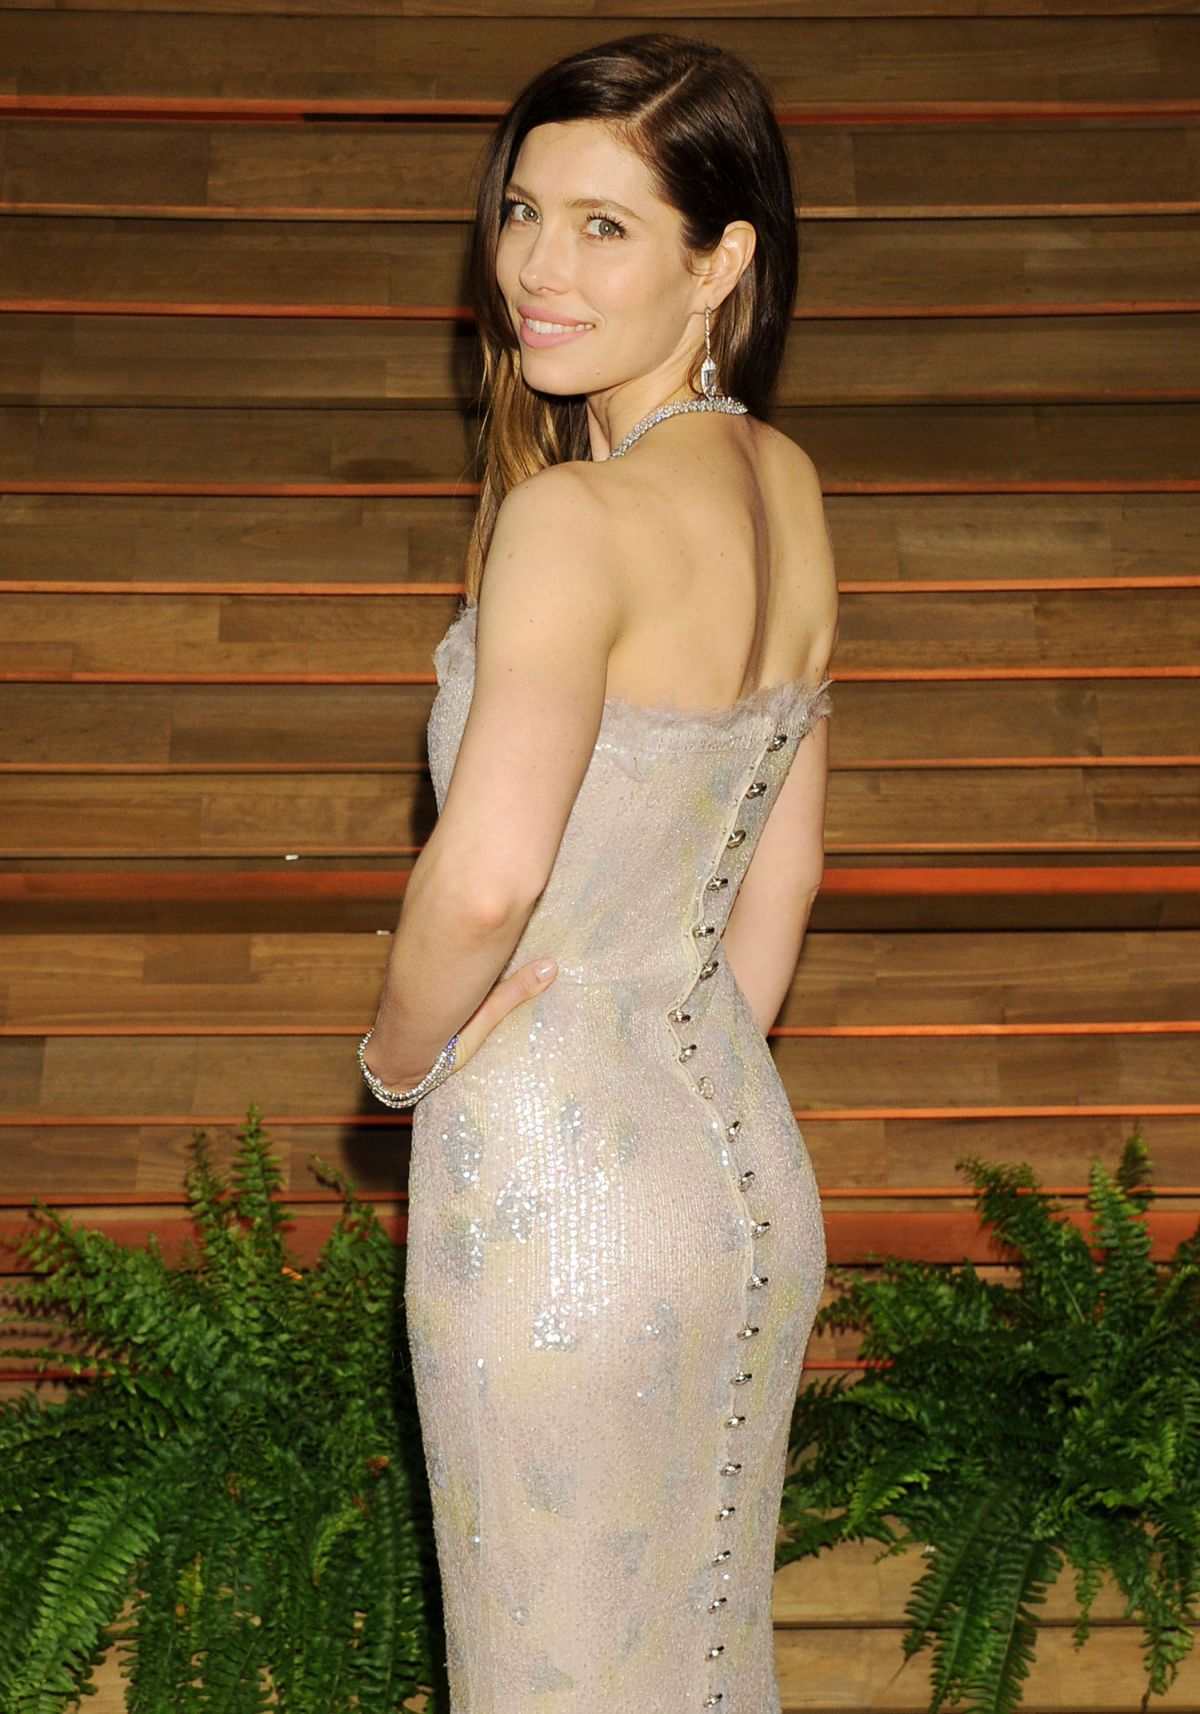 JESSICA BIEL at Vanity Fair Oscar Party in Hollywood